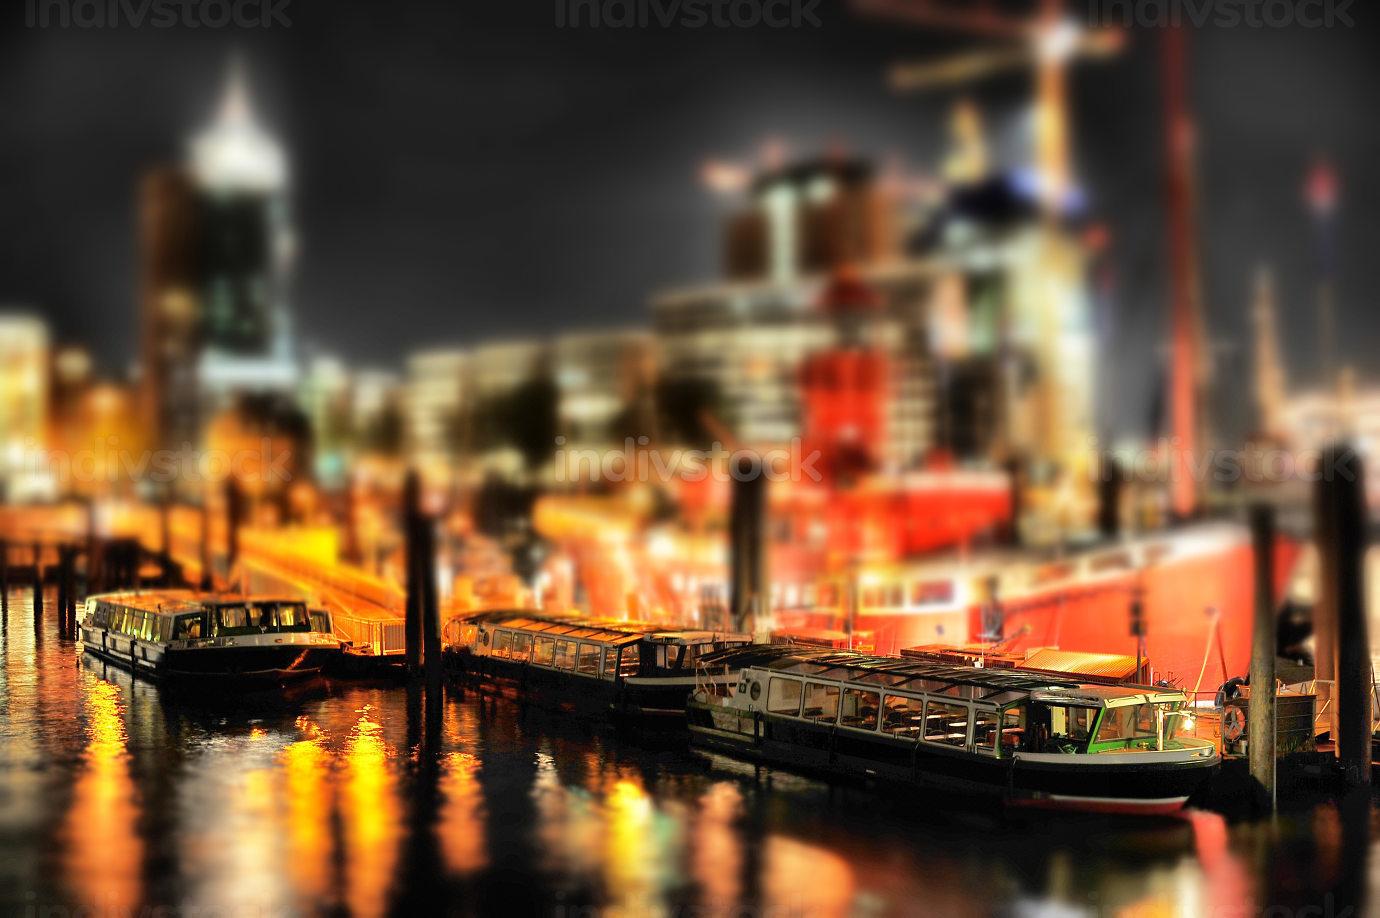 Hamburg Harbour at night